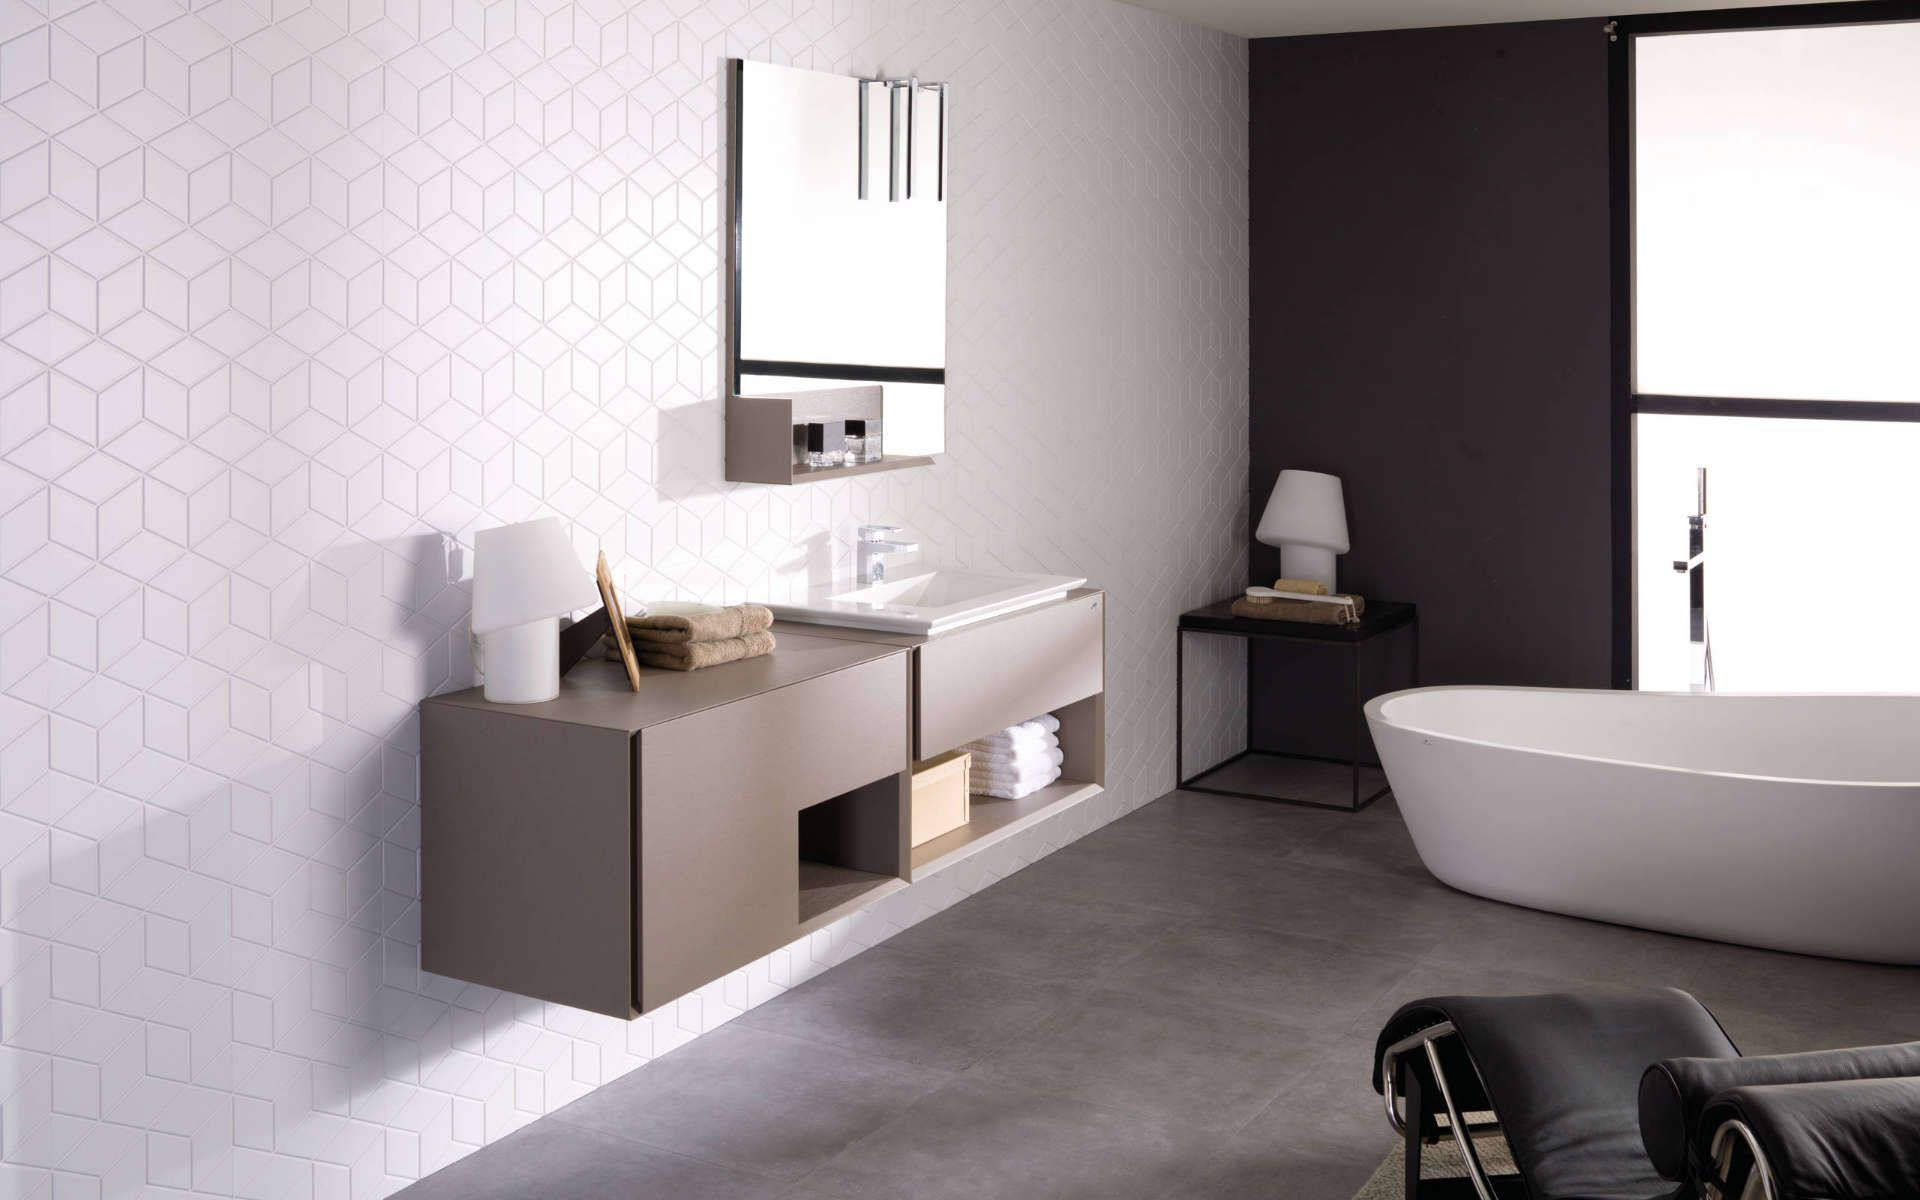 Mobilier De Salle De Bain Meubles De Salle De Bain Porcelanosa Bathroom Furniture Modern Bathroom Furniture Modern Bathroom Decor